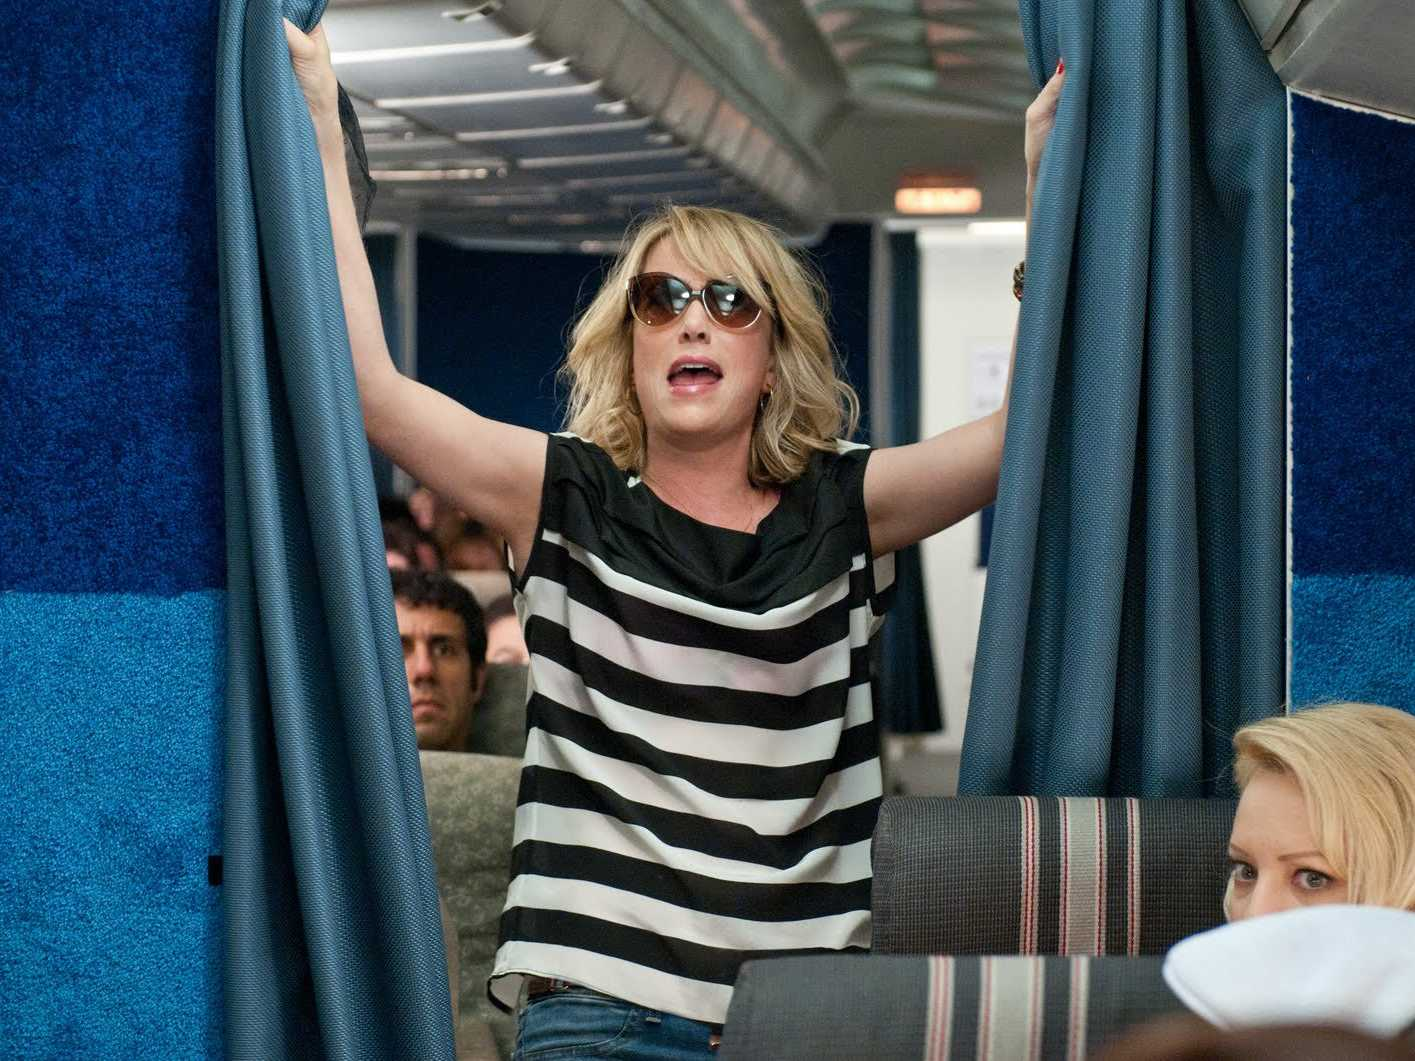 15 Tips for Surviving a Long Airplane Flight